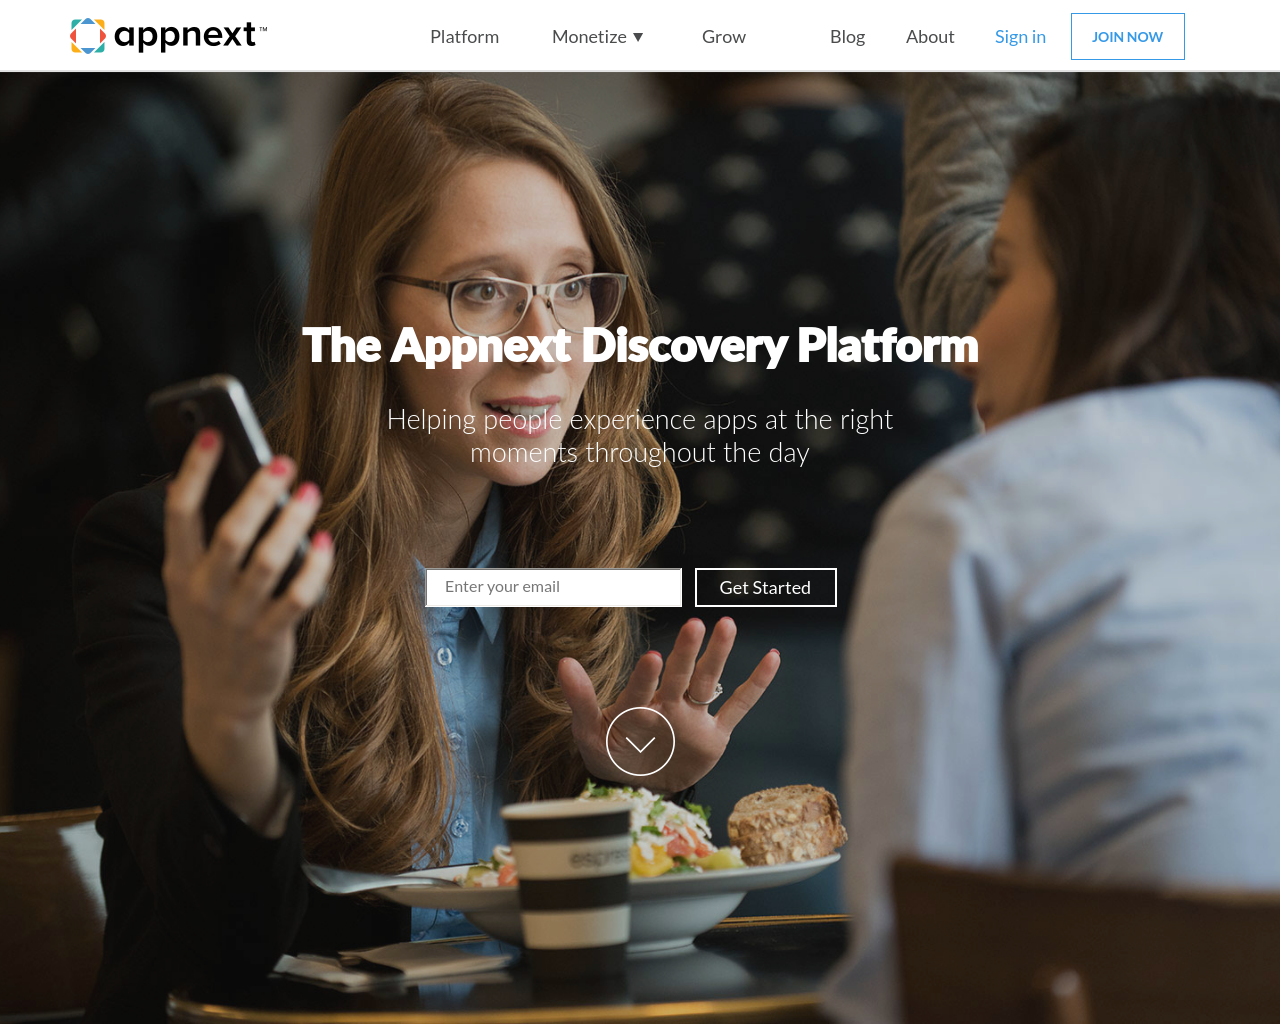 Appnext-Advertising-Reviews-Pricing